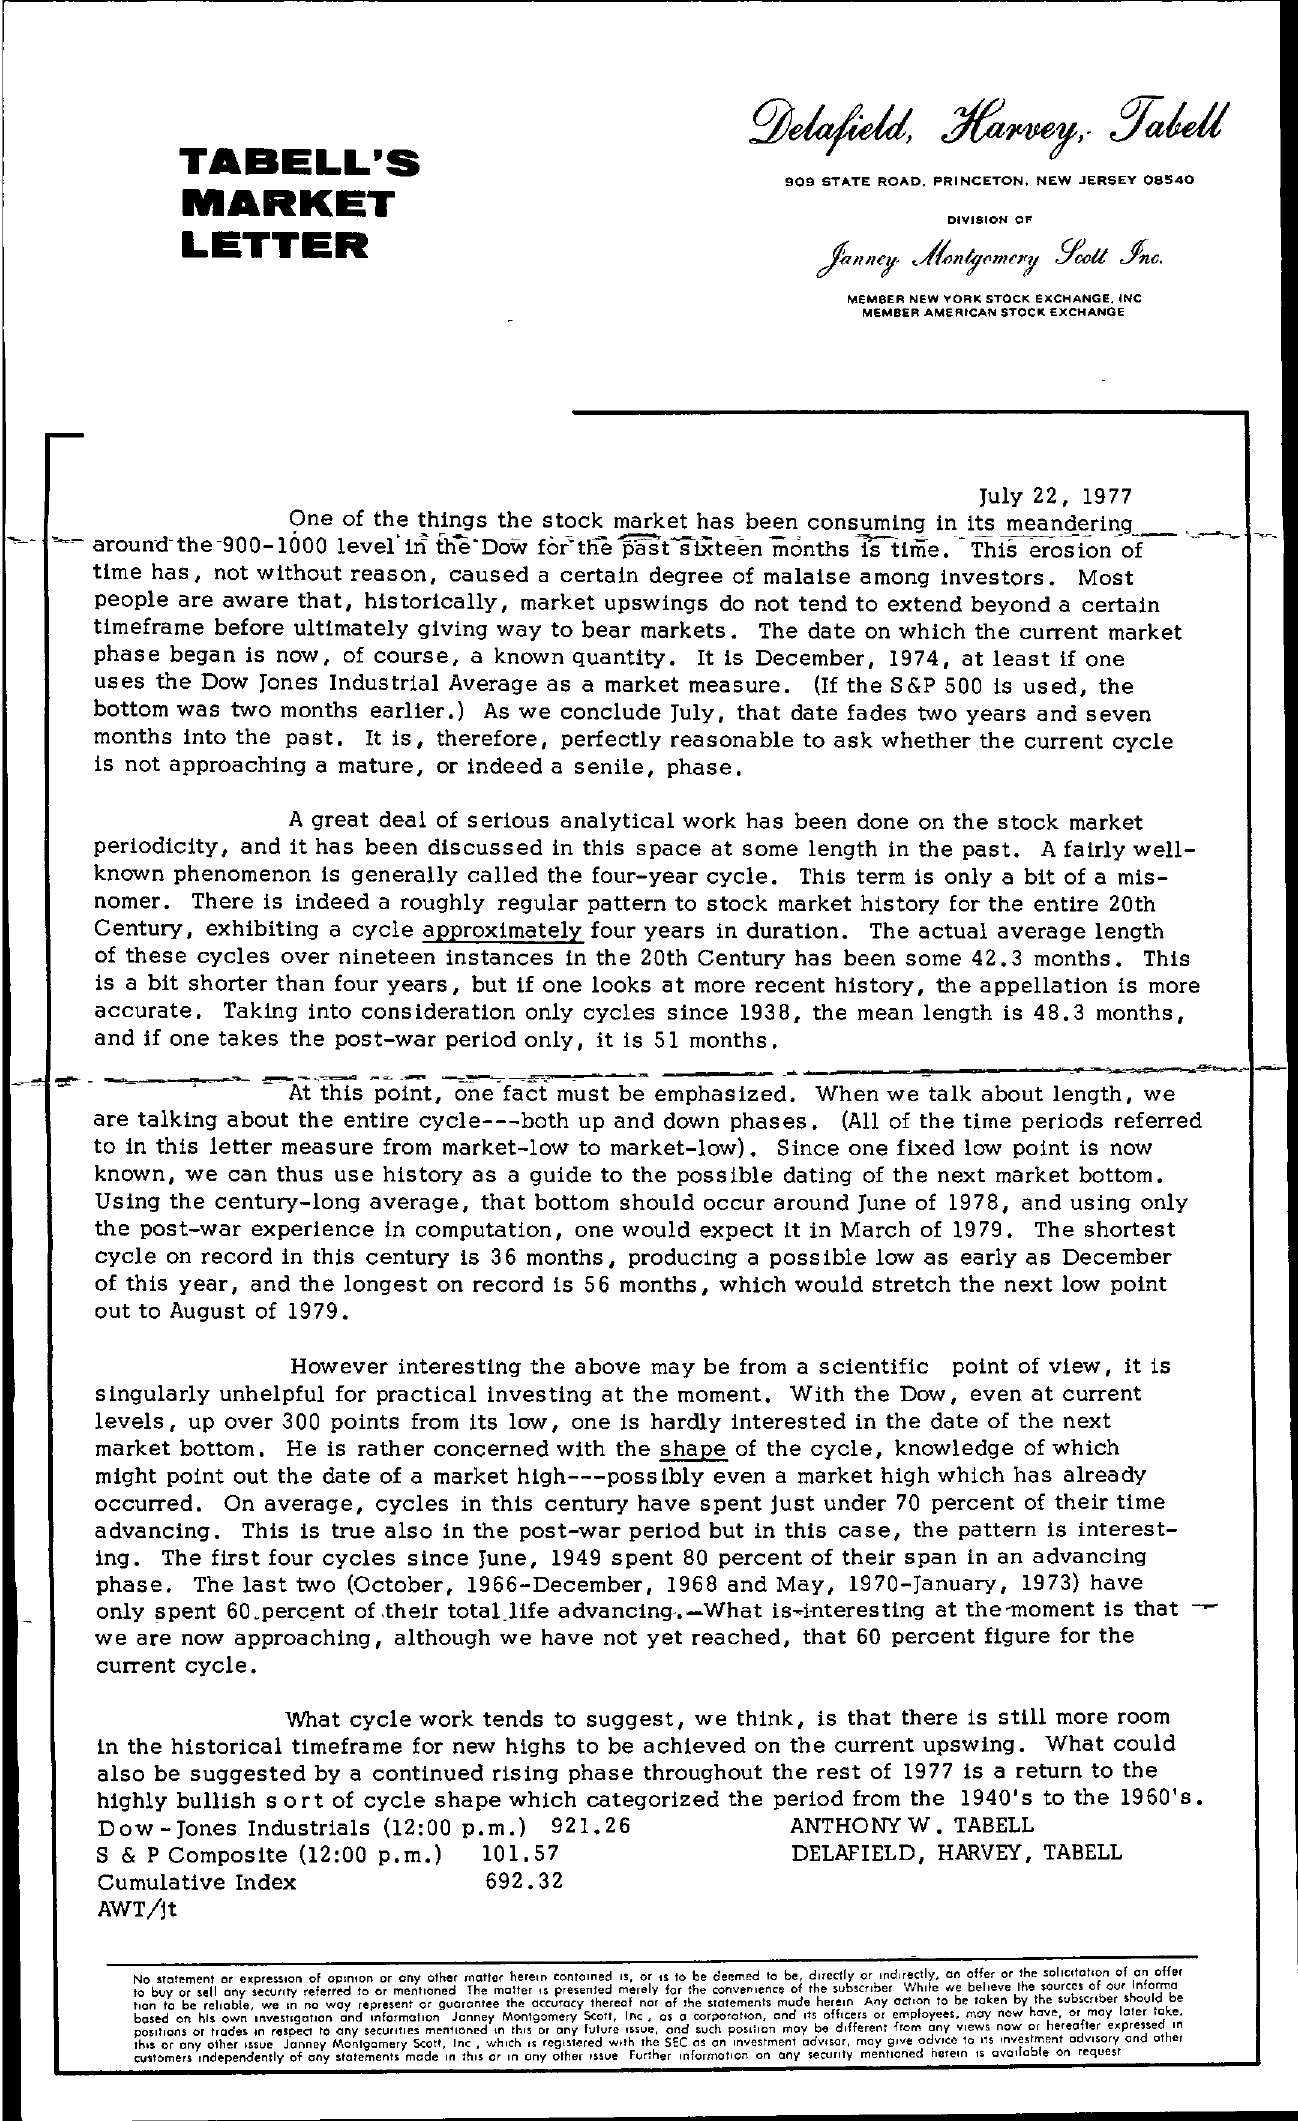 Tabell's Market Letter - July 22, 1977